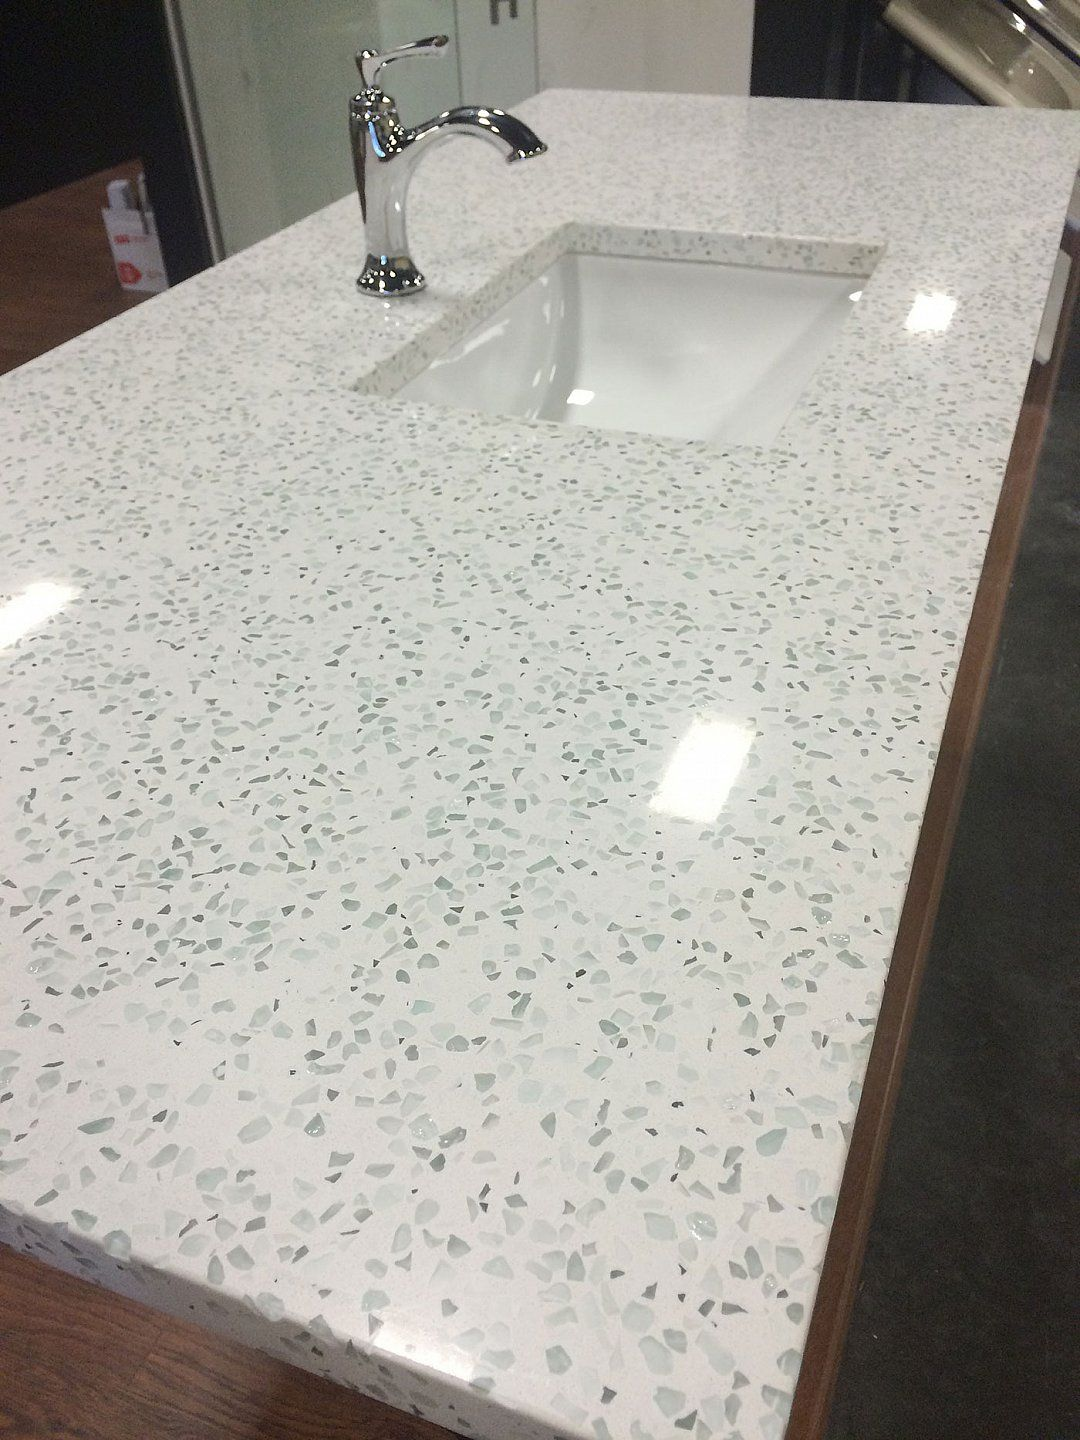 I Am Intrigued By Recycled Gl Countertops They Are A Bit Er Than Quartz Curava In Action Counters